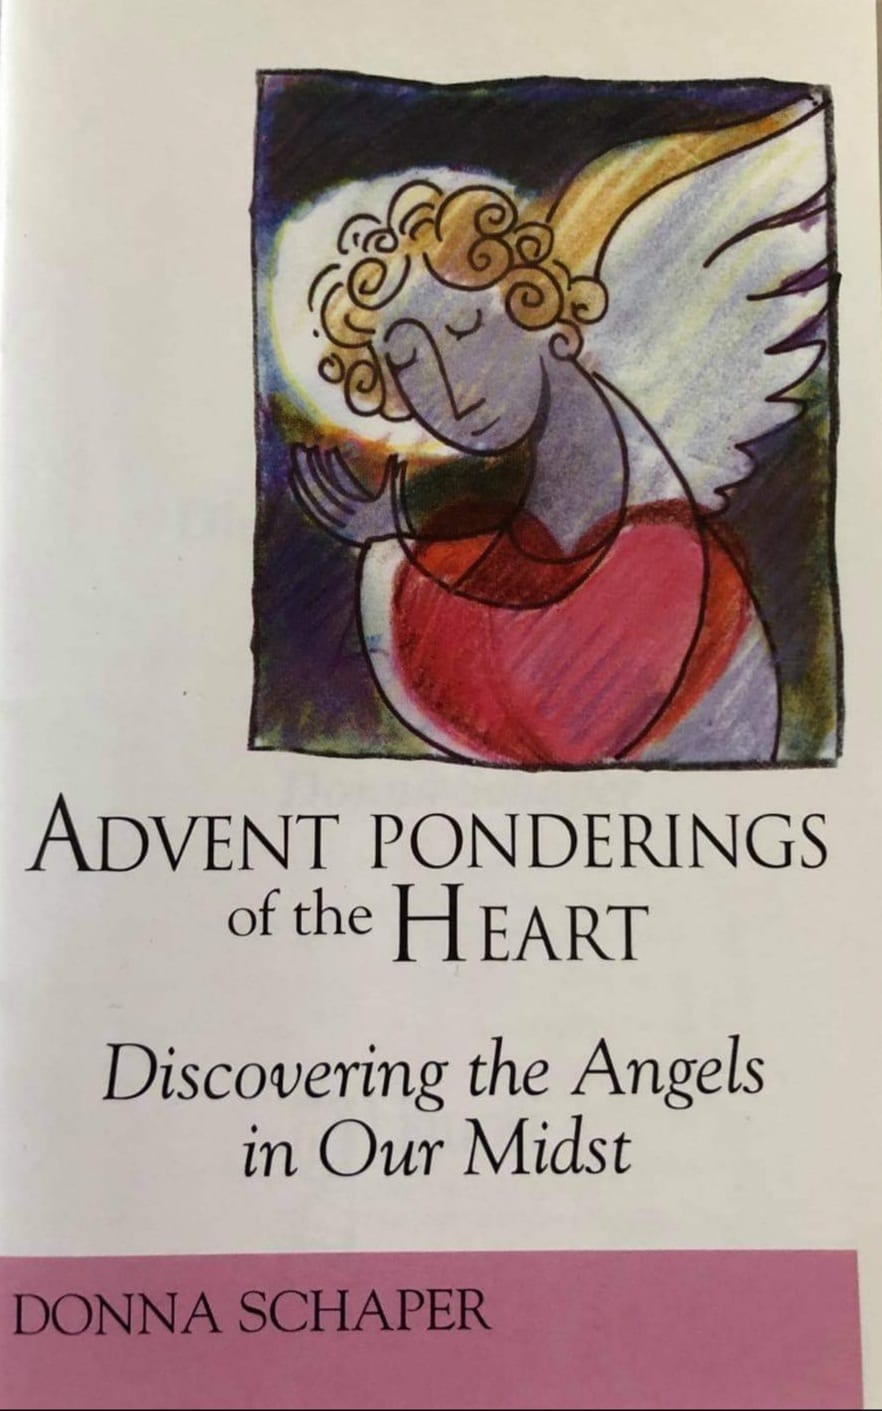 Advent Ponderings of the Heart: Discovering the Angels in Our Midst